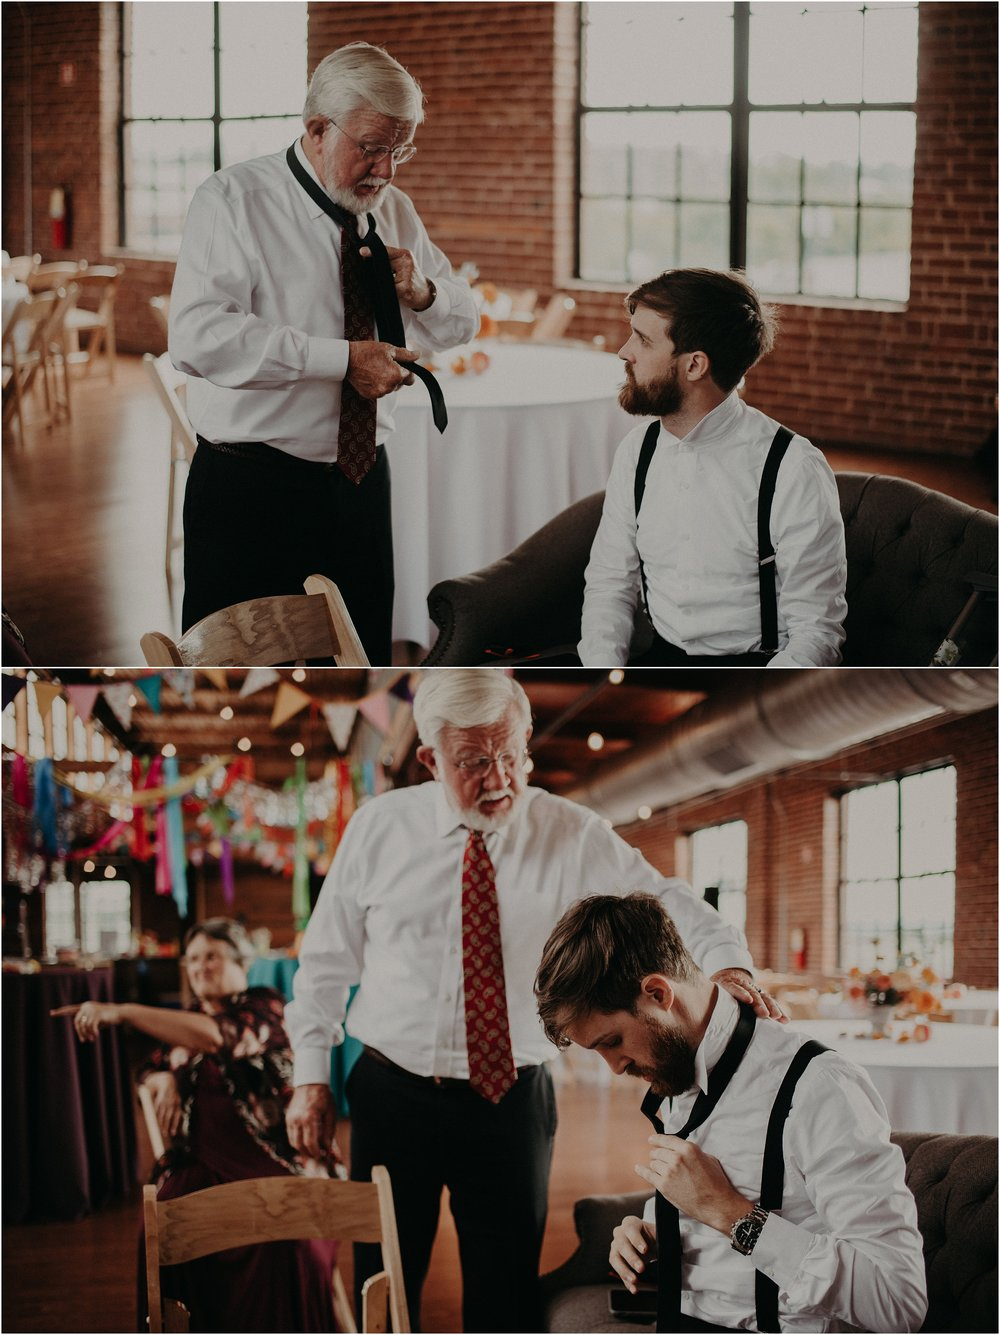 The groom's father helps him tie his tie